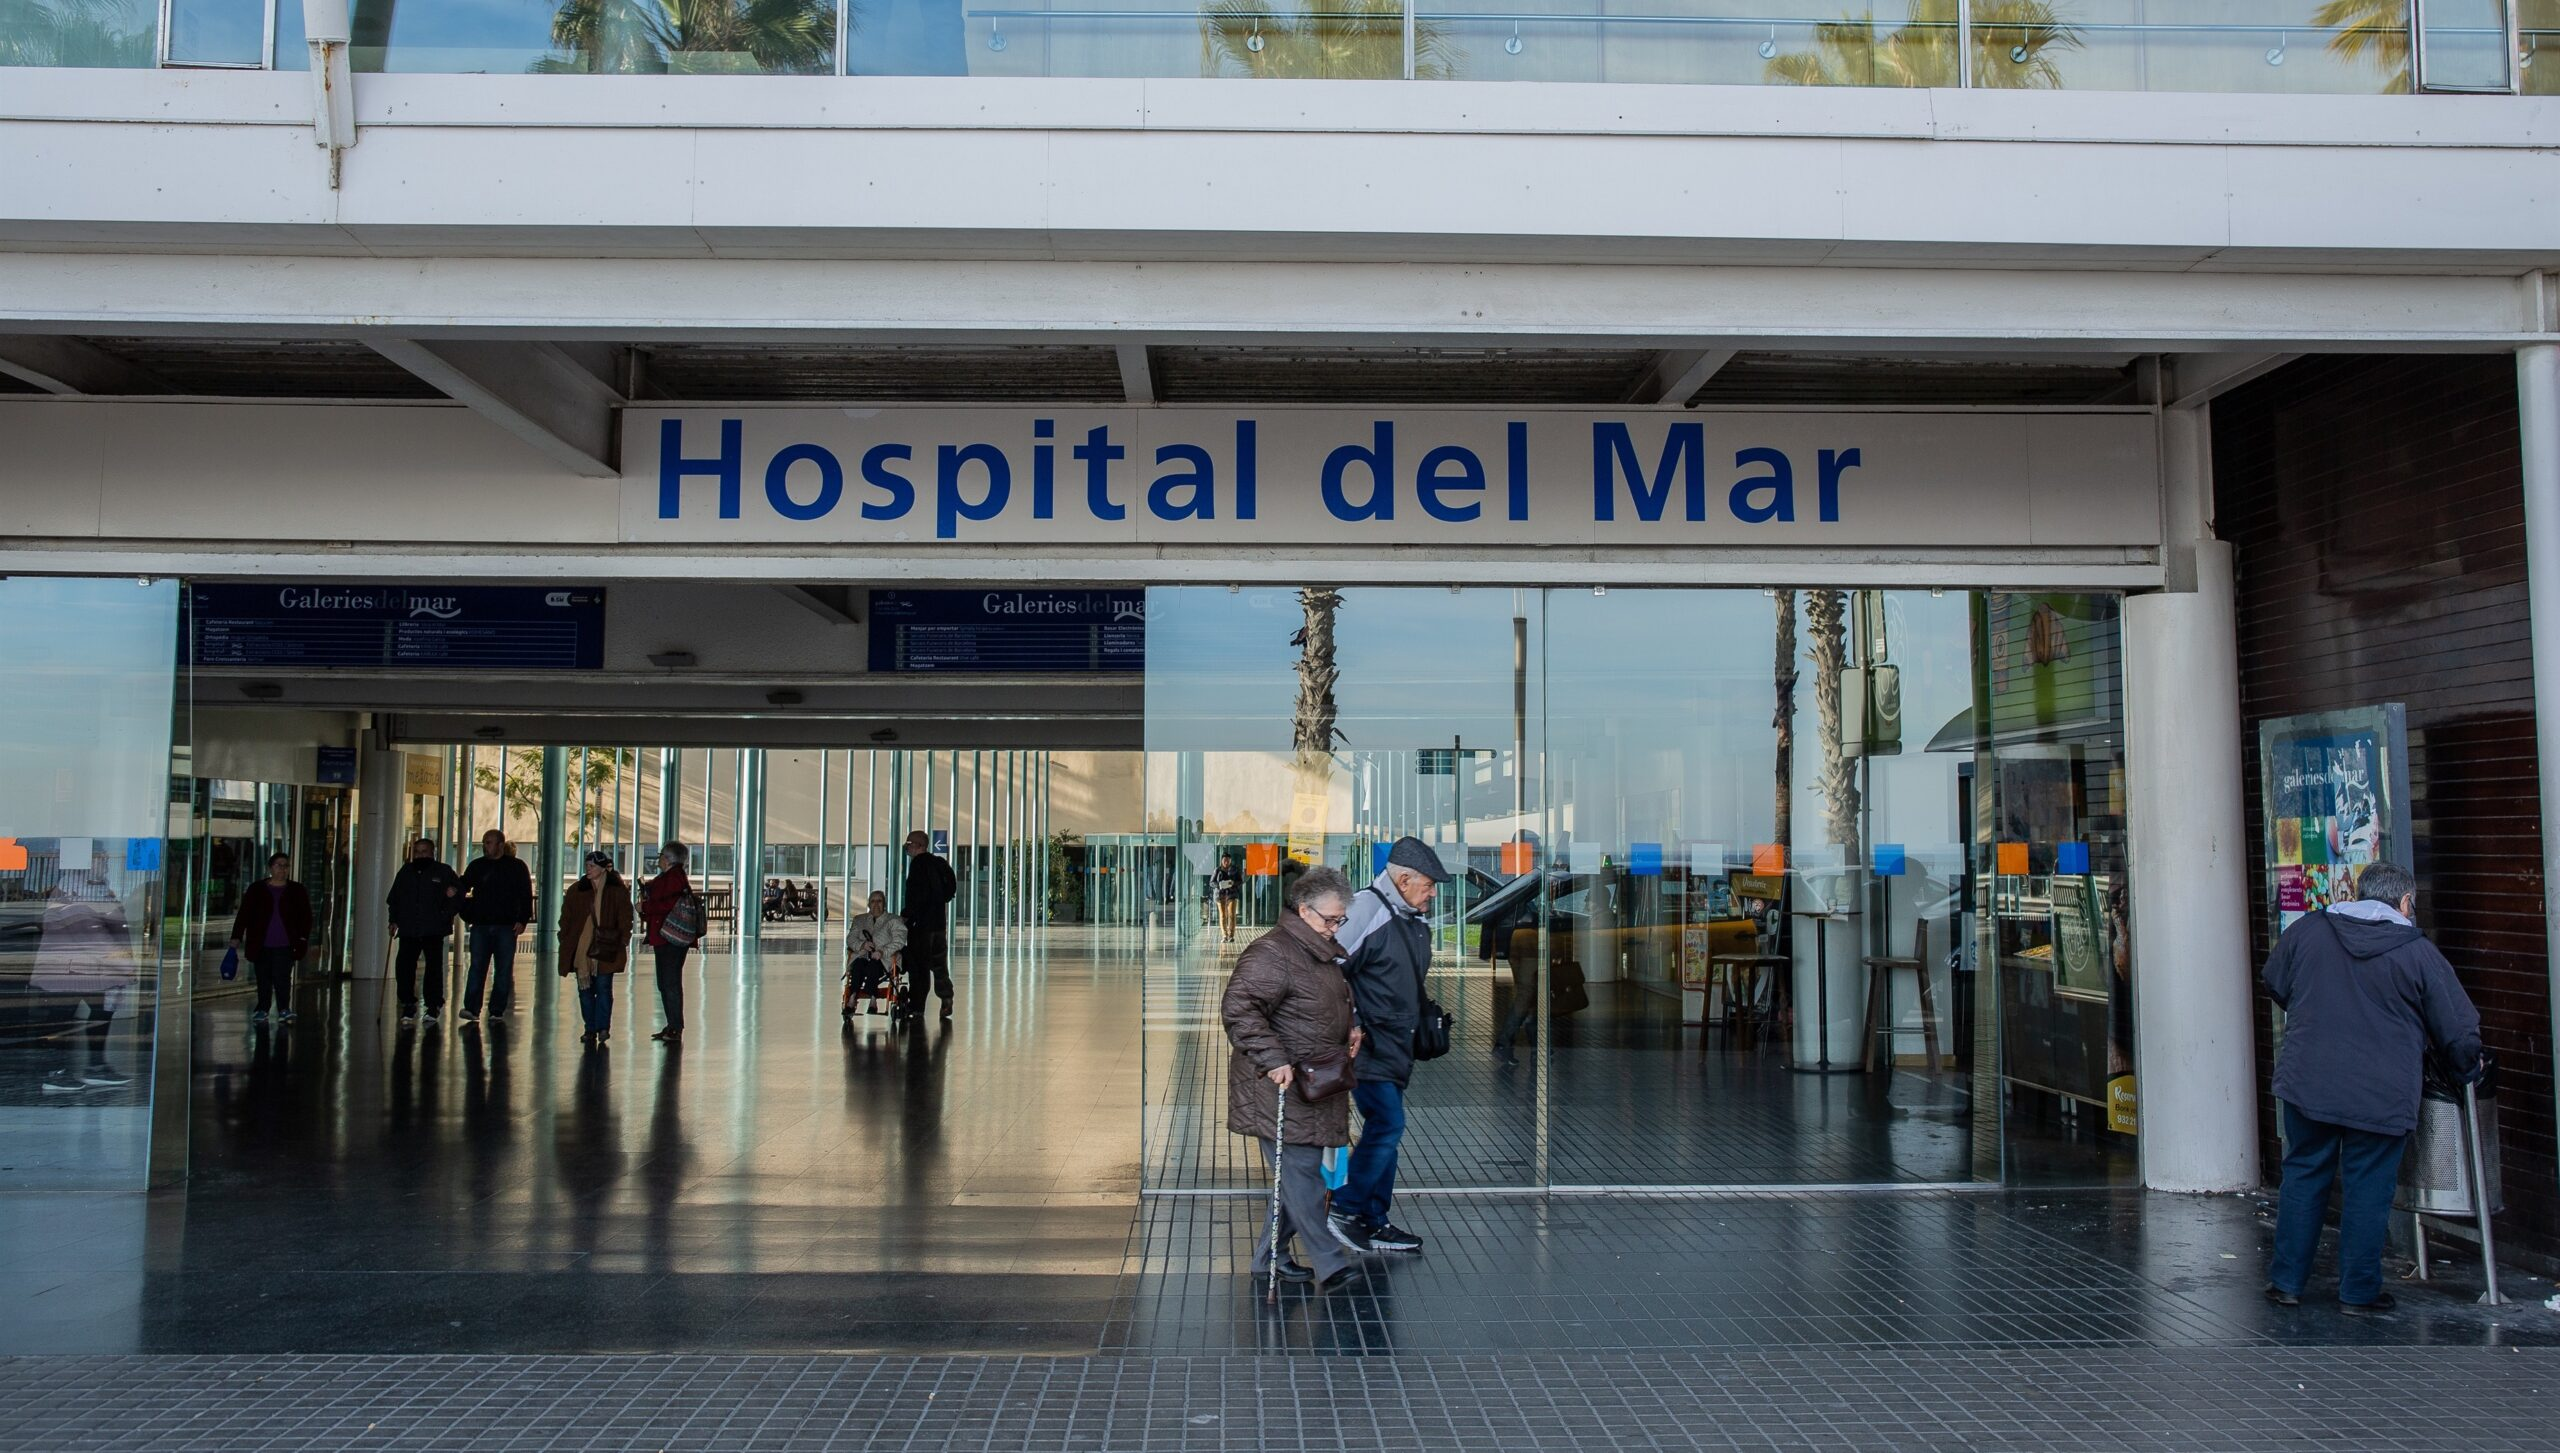 La façana de l'Hospital del Mar, en imatge d'arxiu / David Zorrakino (Europa Press)